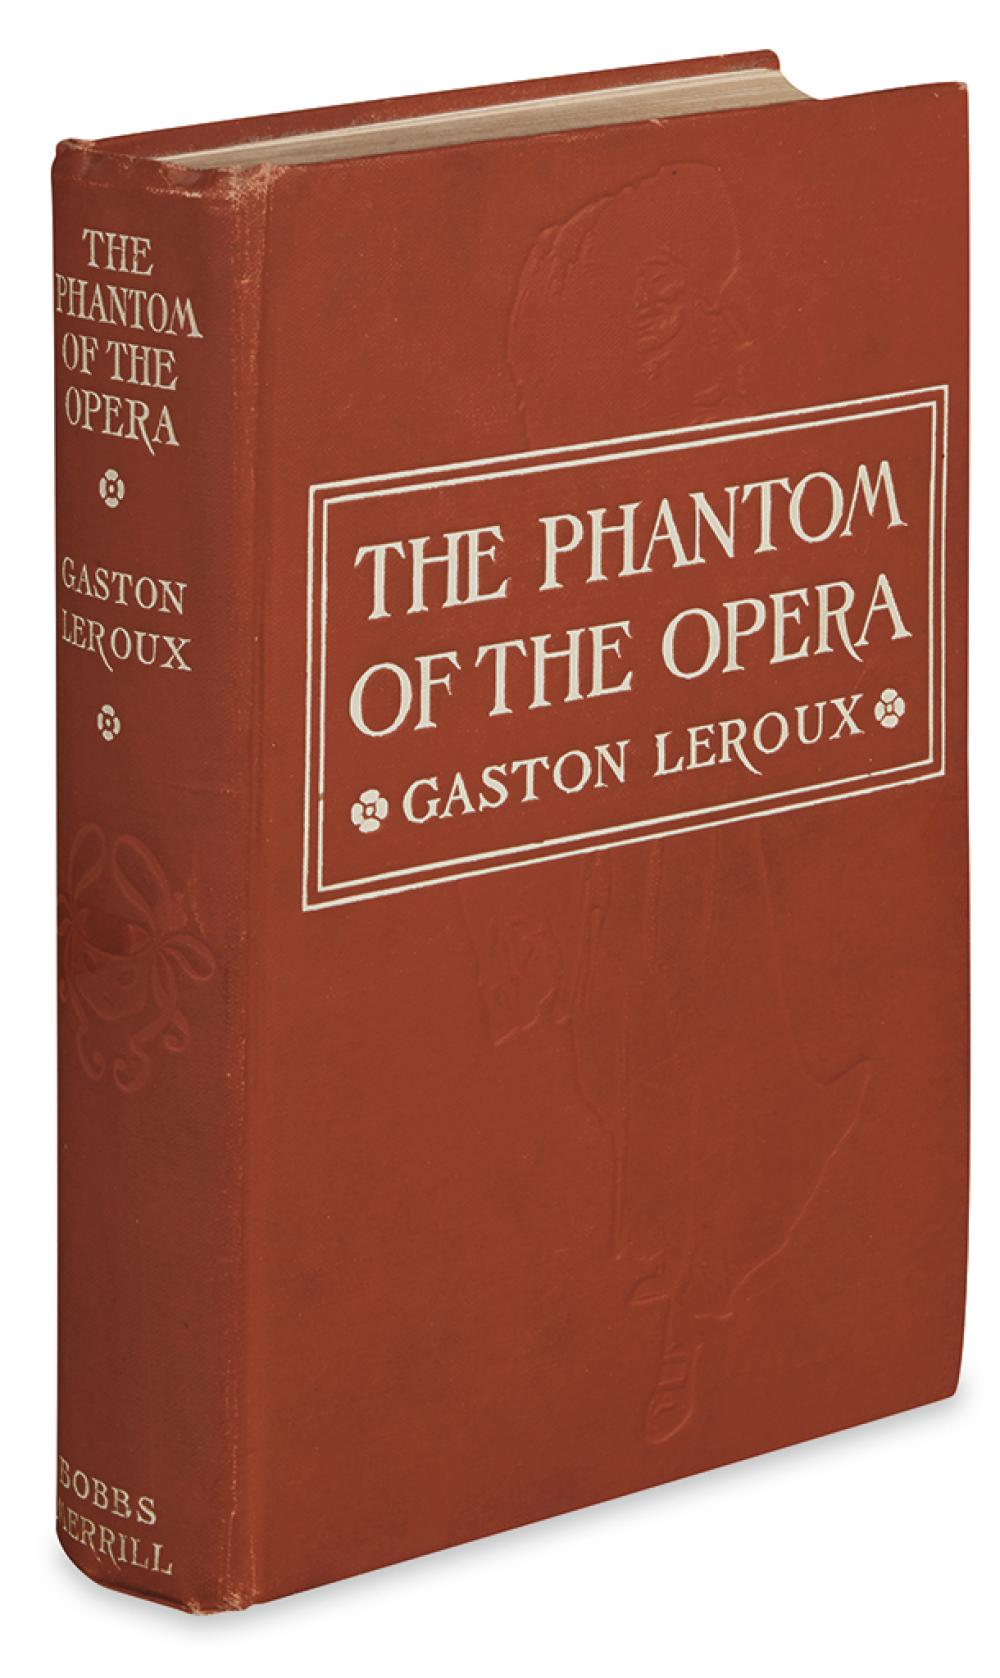 LEROUX, GASTON. The Phantom of the Opera.